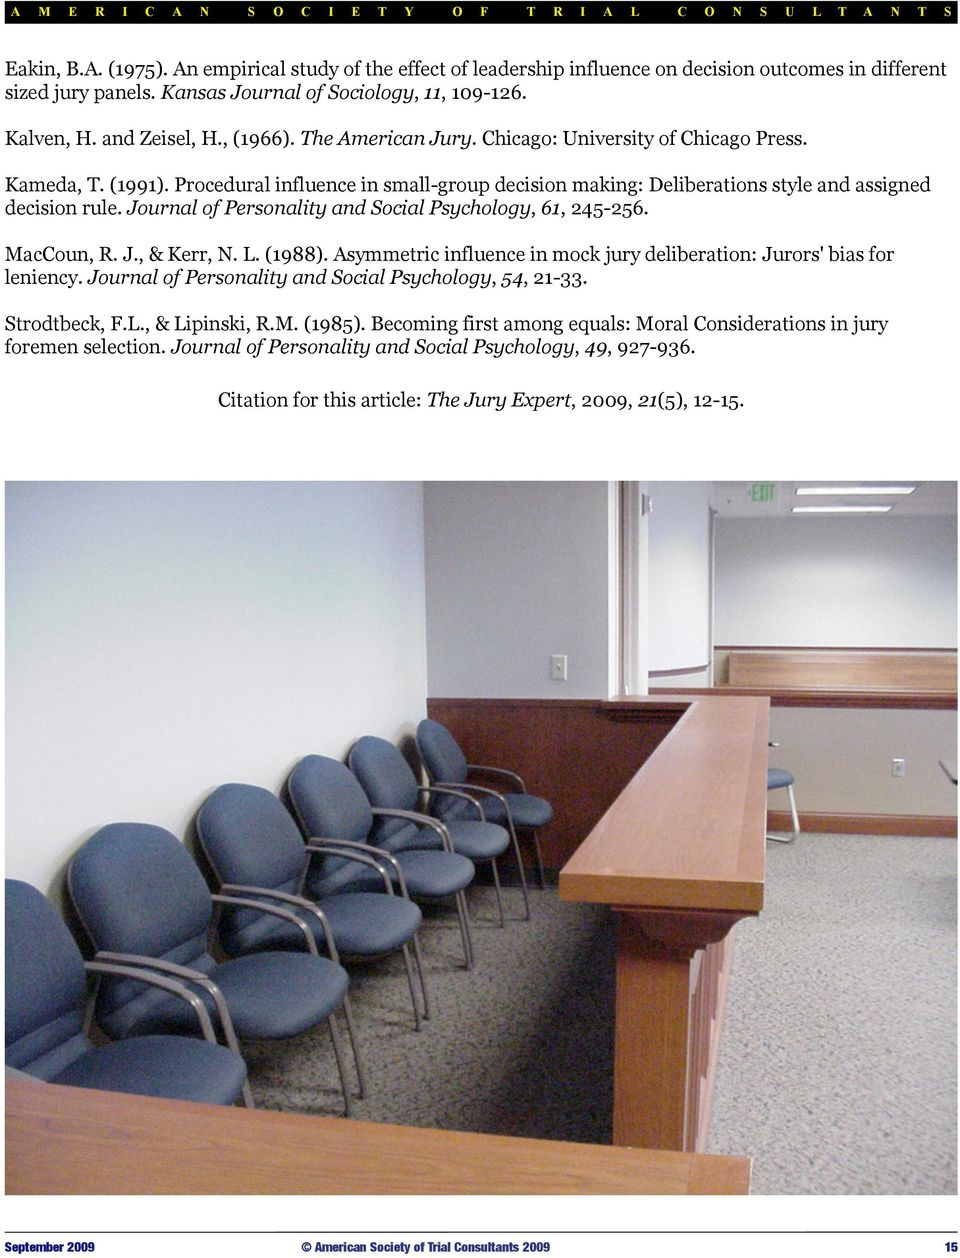 Journal of Personality and Social Psychology, 61, 245-256. MacCoun, R. J., & Kerr, N. L. (1988). Asymmetric influence in mock jury deliberation: Jurors' bias for leniency.